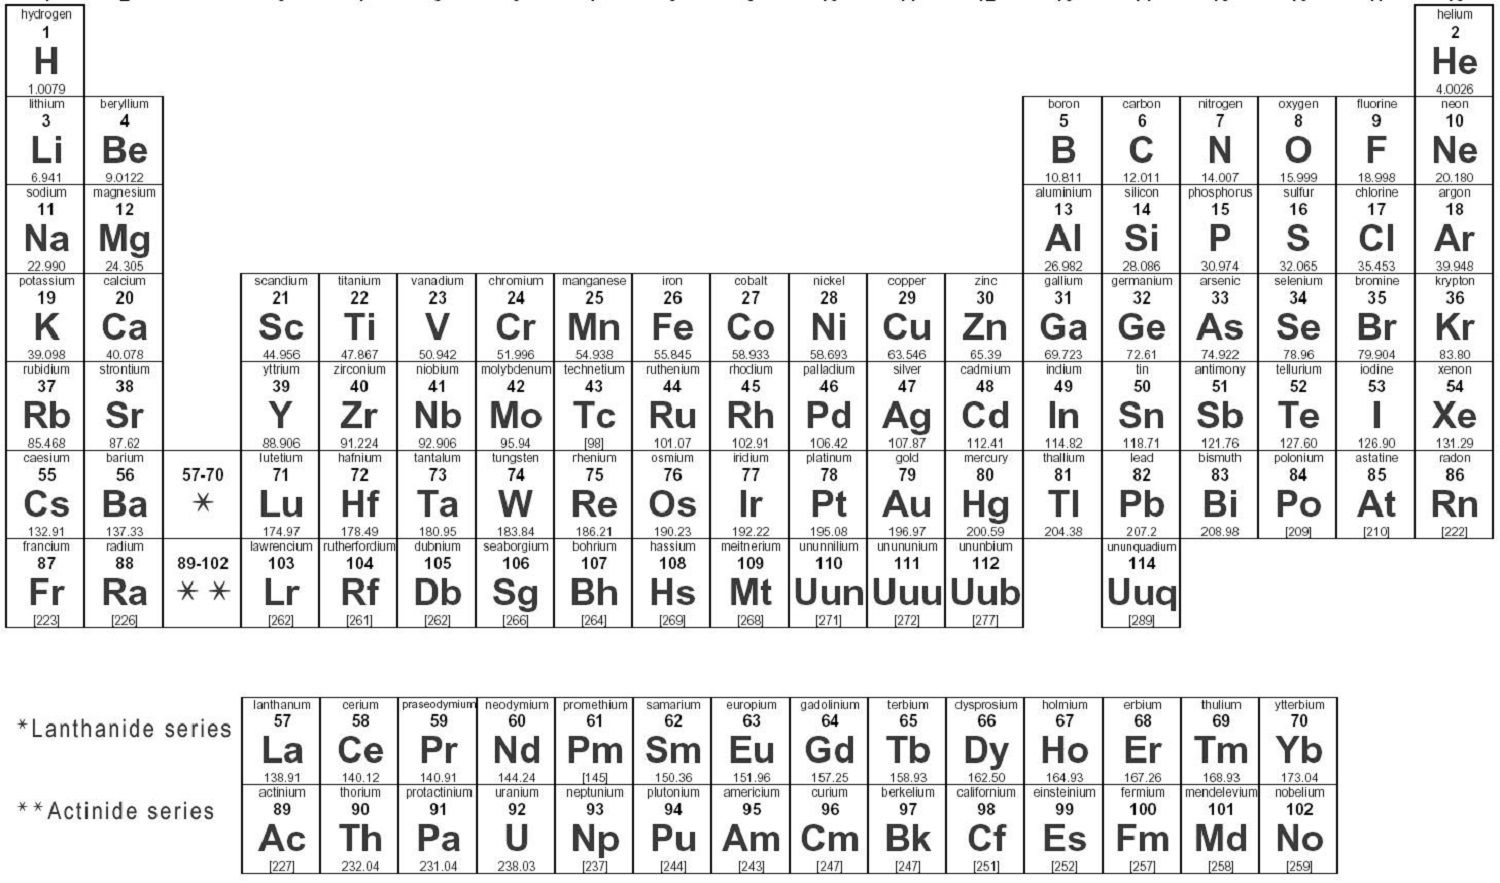 Printable periodic table for science chart or table pinterest i love this periodic table that gap makes it so much clearer that the lanthanide and actinide series belong in the table and are stuck underneath only to gamestrikefo Images